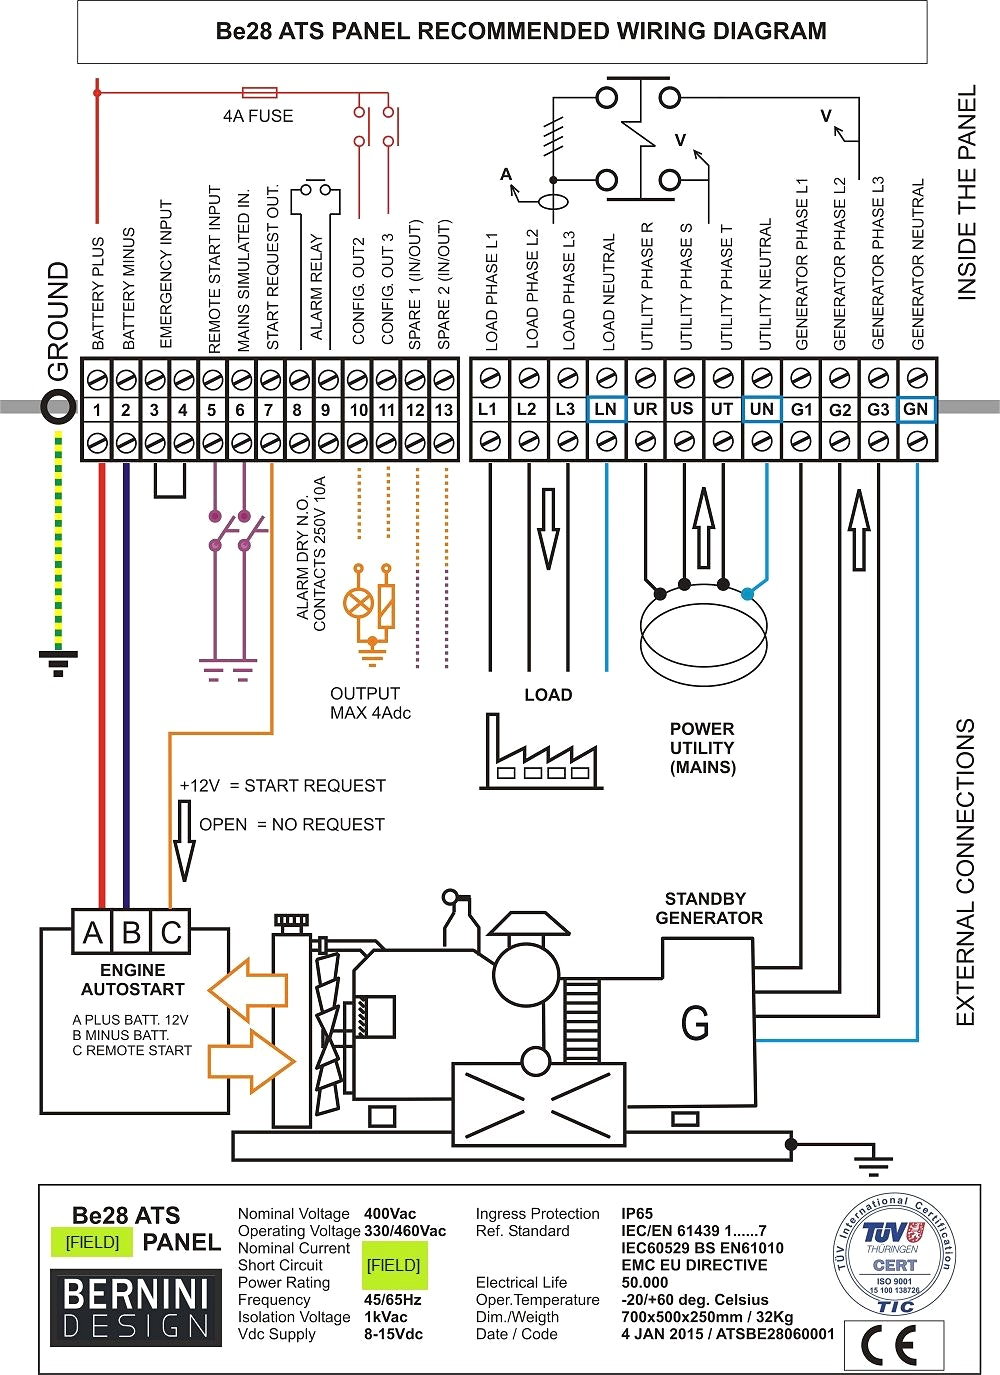 generator changeover switch wiring diagram Collection-Generator Changeover Switch Wiring Diagram Unique How to Wire An isolator Switch Wiring Diagram 10-r